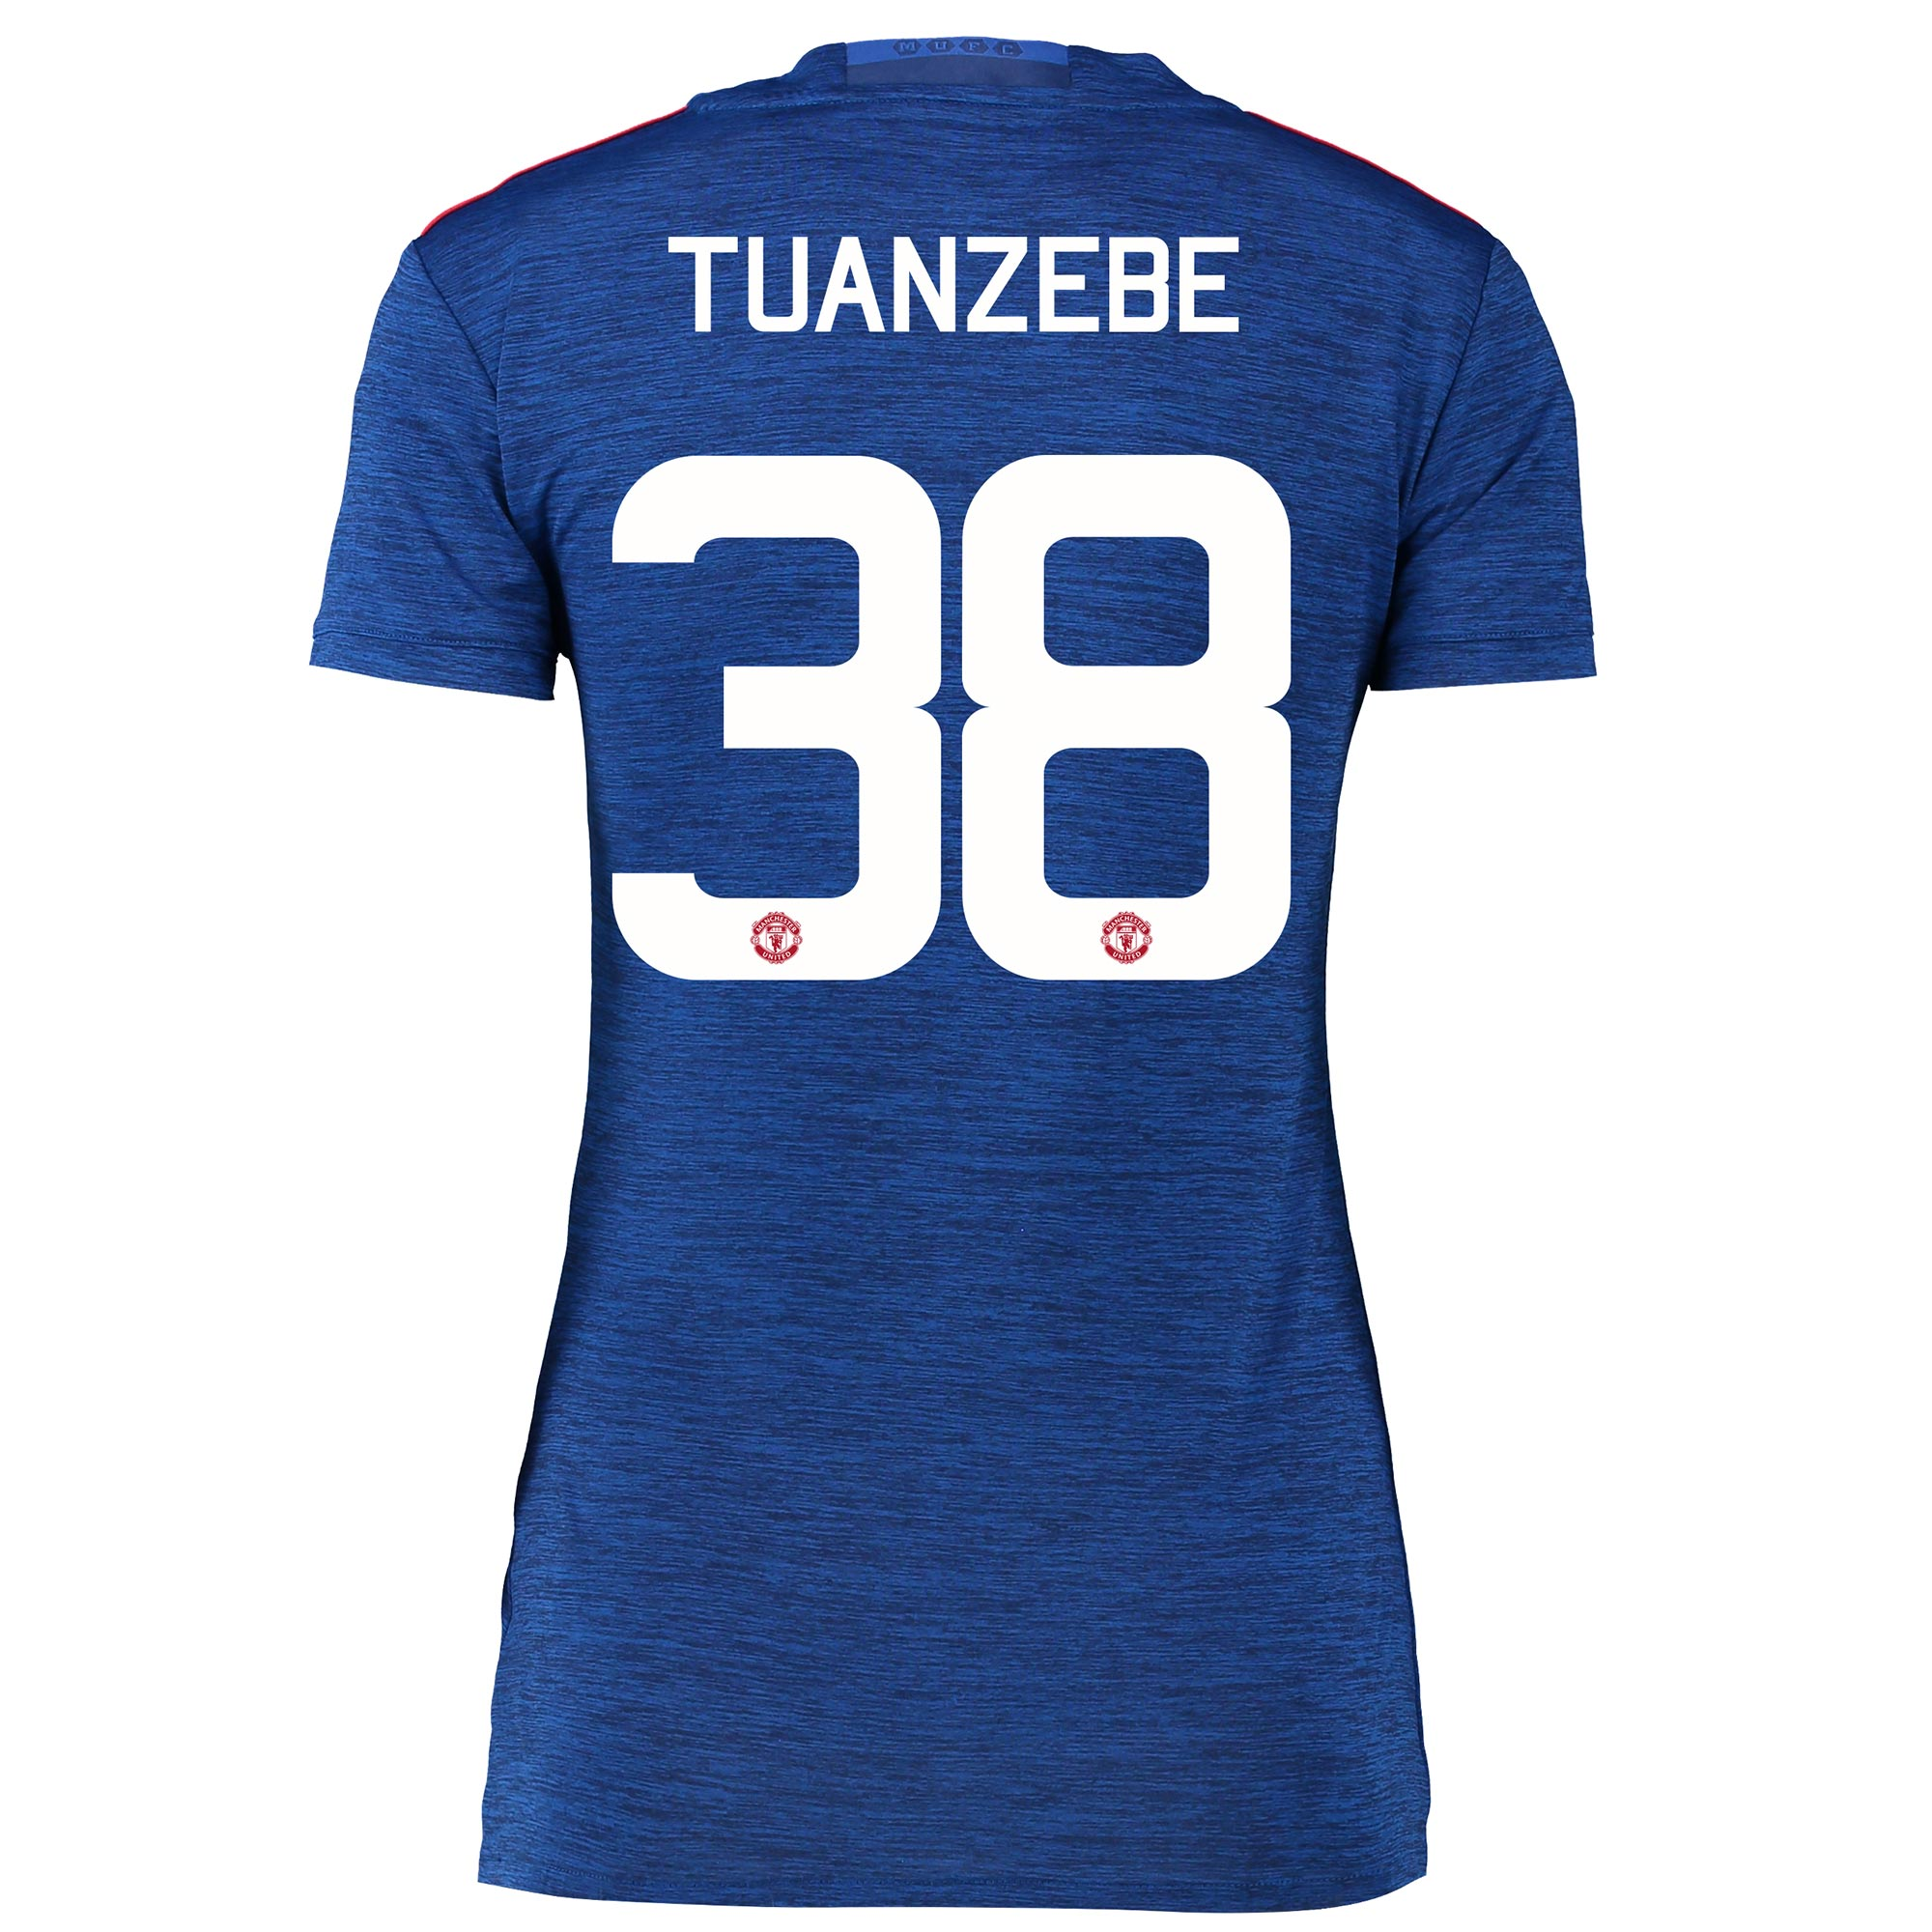 Manchester United Away Cup Shirt 2016-17 - Womens with Tuanzebe 38 pri